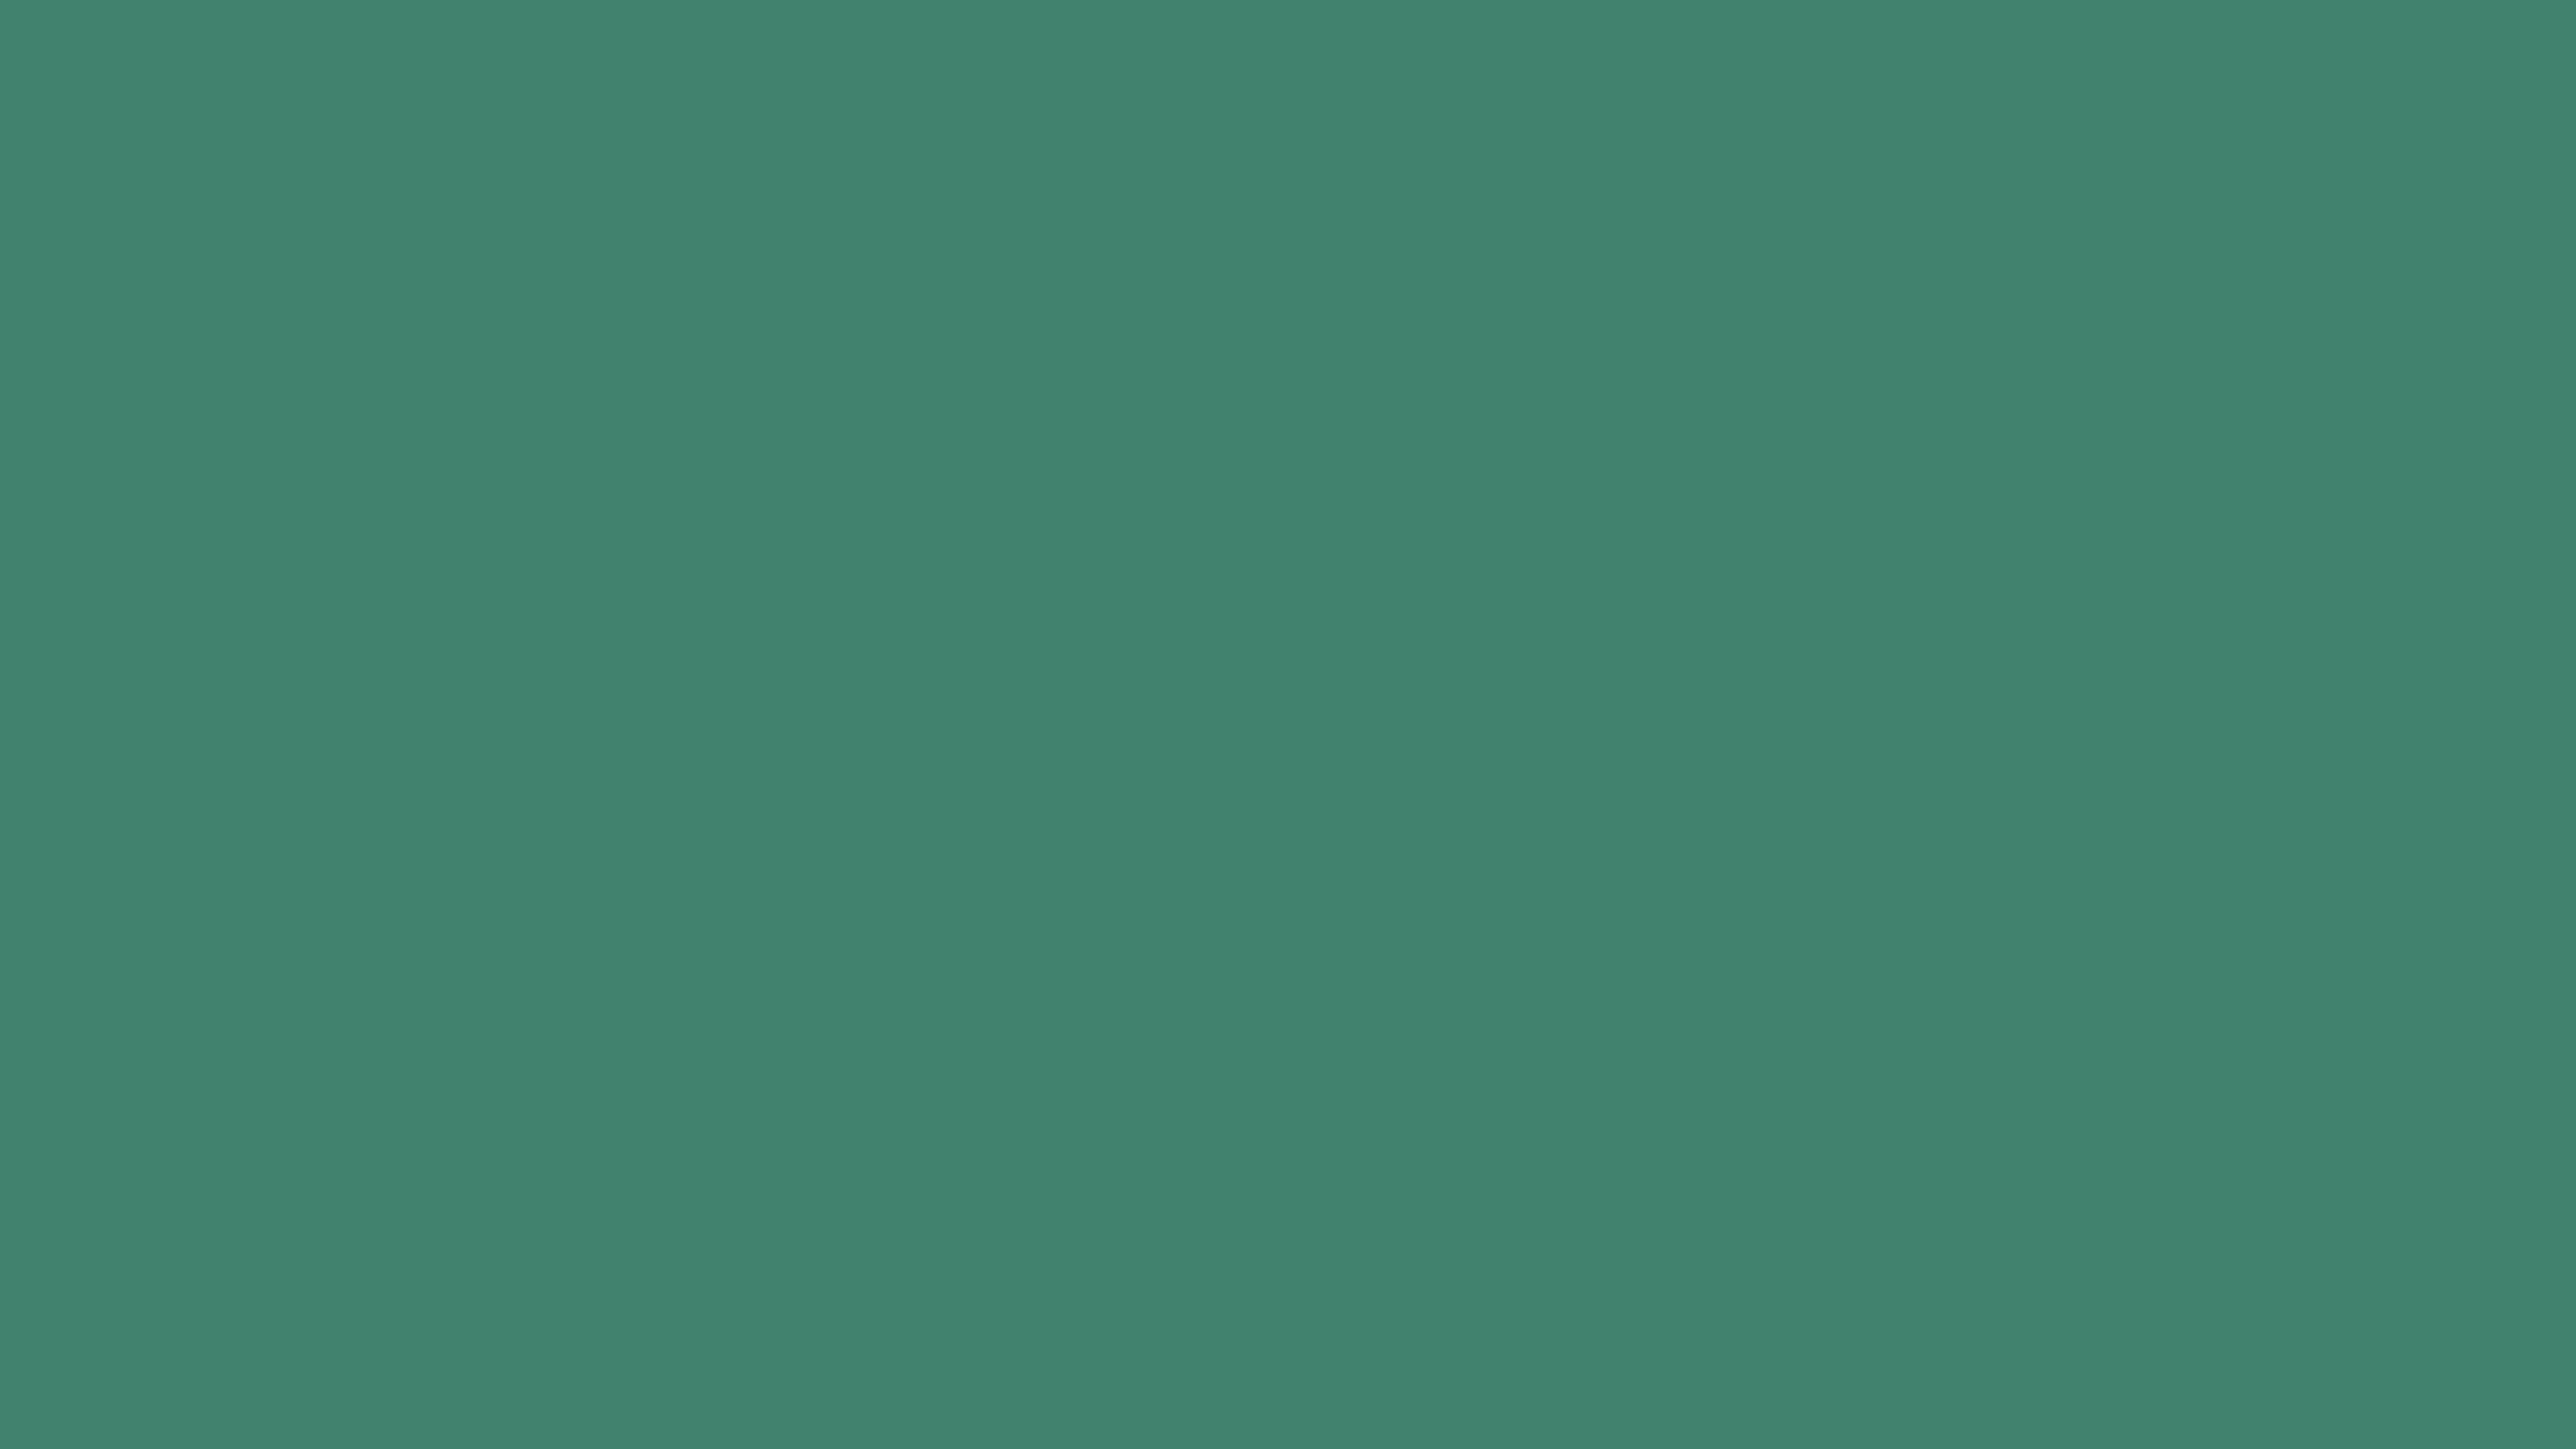 4096x2304 Viridian Solid Color Background